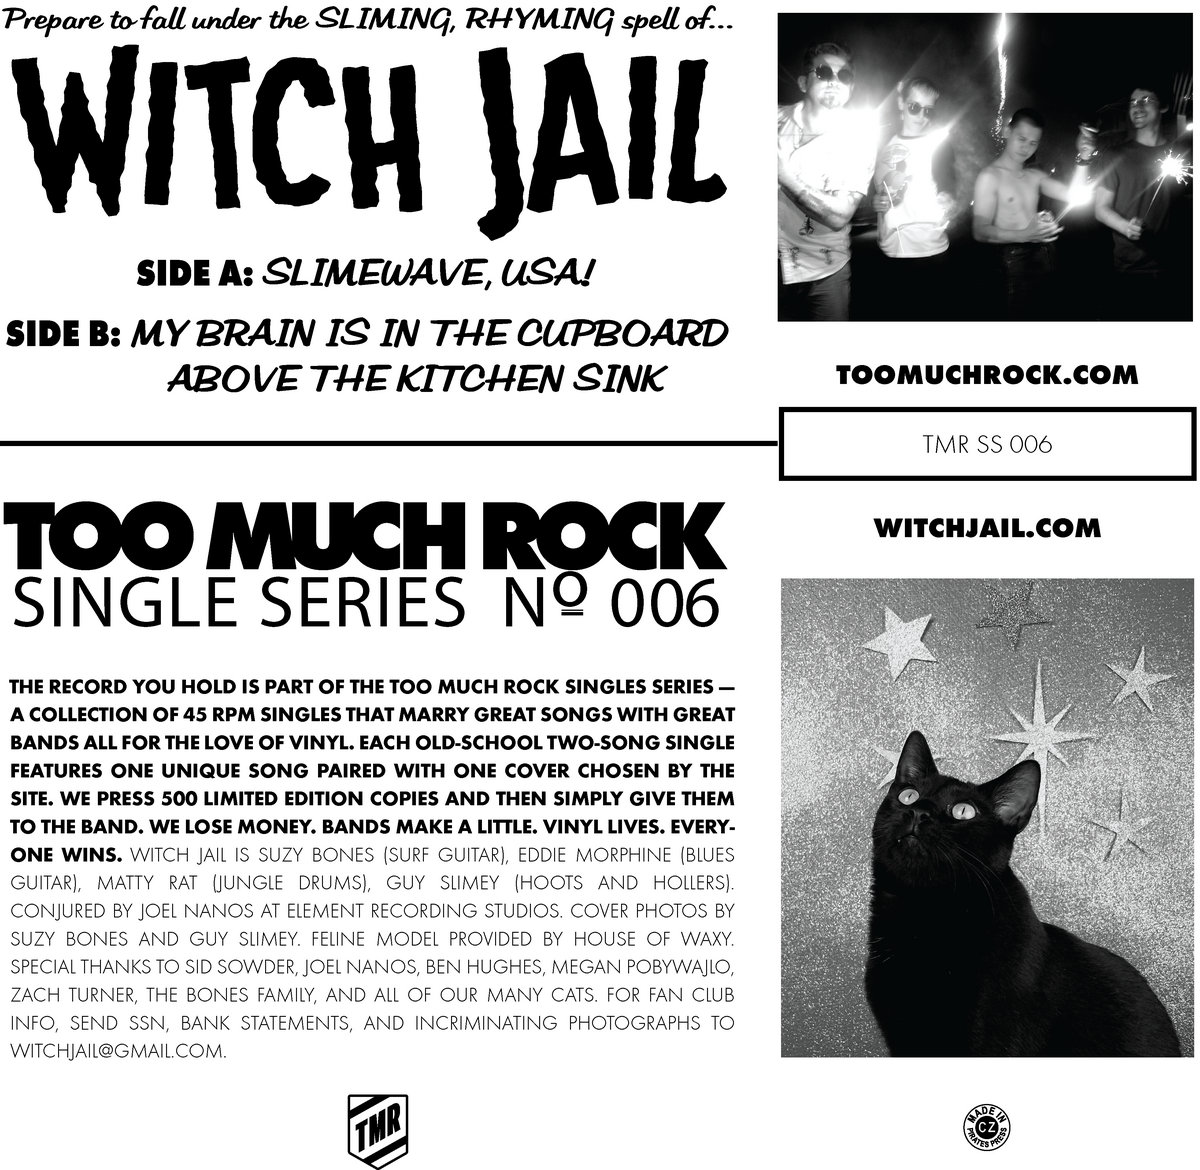 Slimewave USA! Witch Jail's Brick Invasion